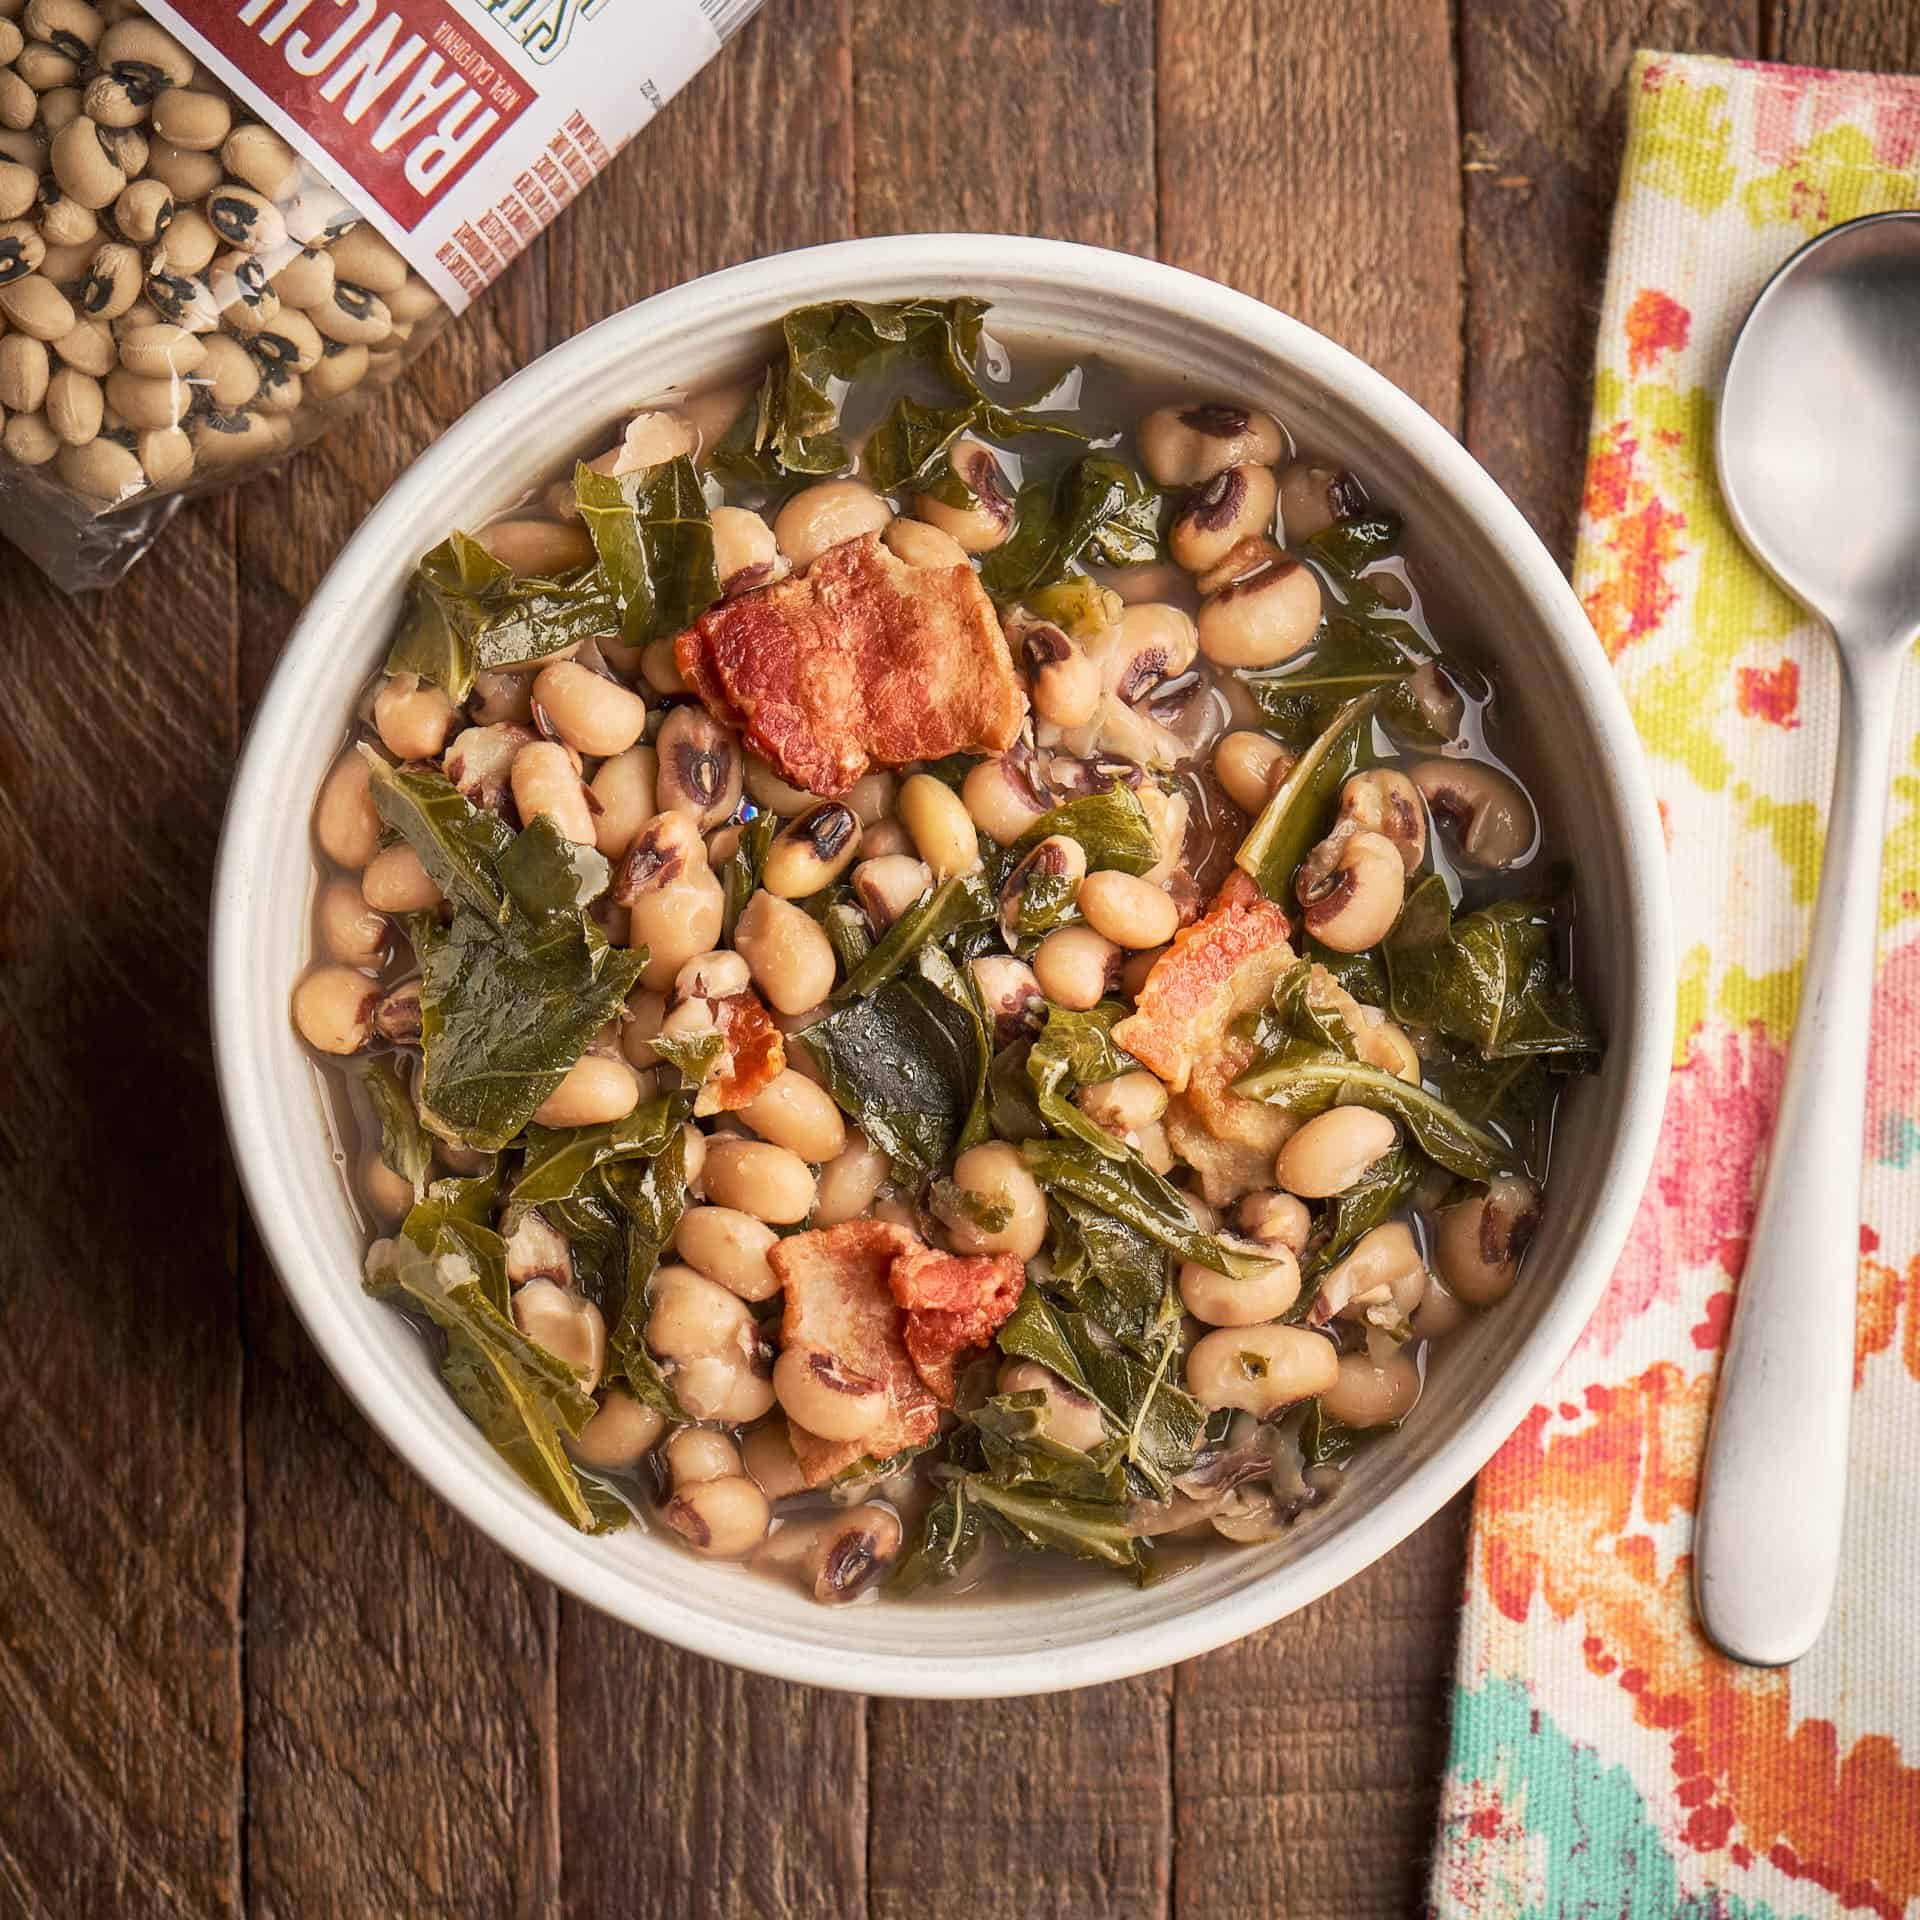 A bowl of black eyed peas and collard greens on a wood table with a bag of beans, a napkin, and a spoon